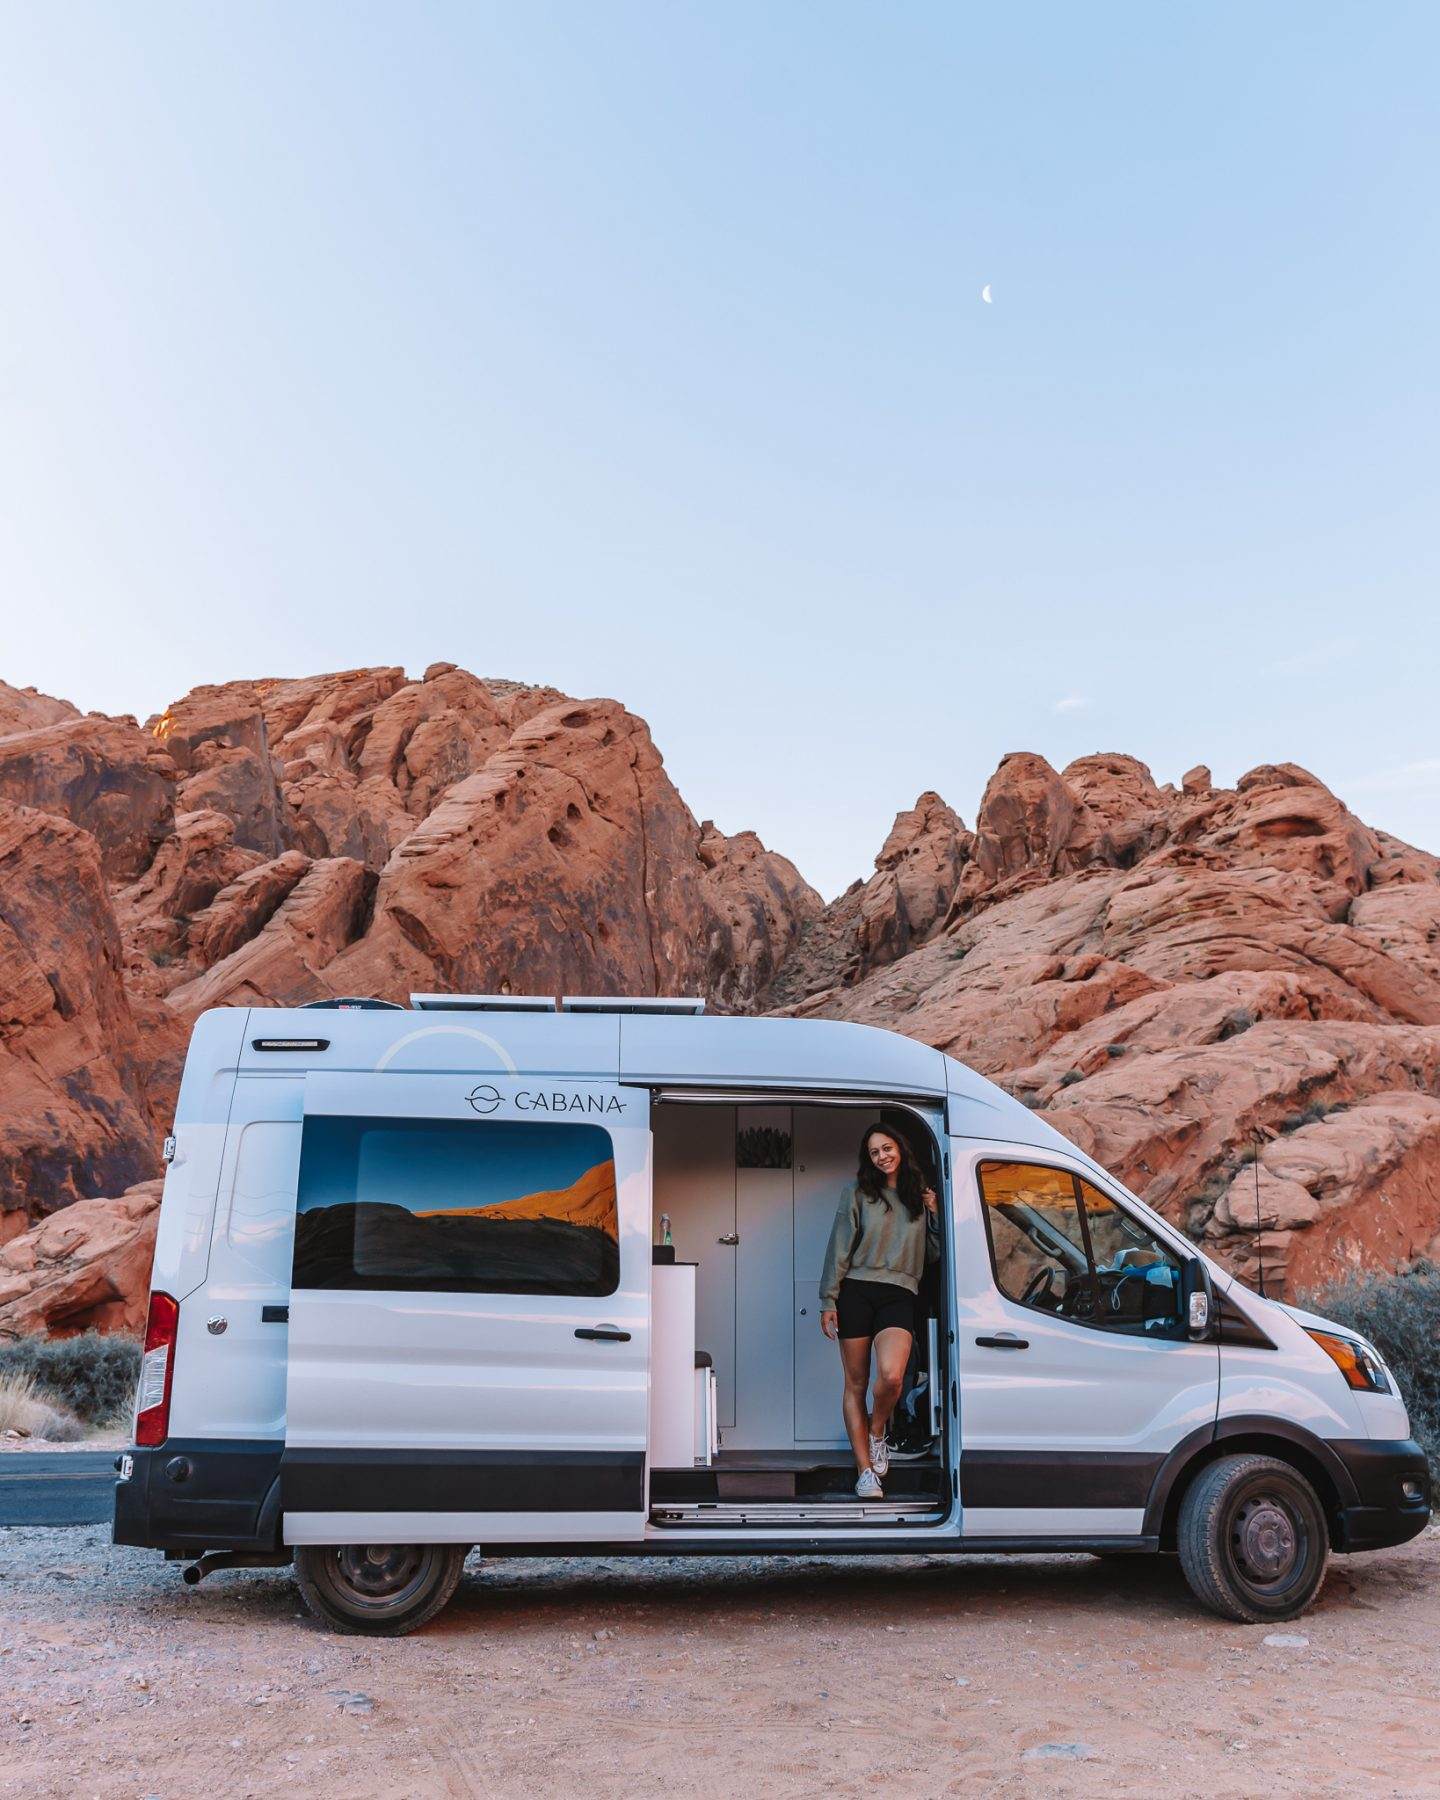 cabana vans campervan rental with girl in valley of fire state park